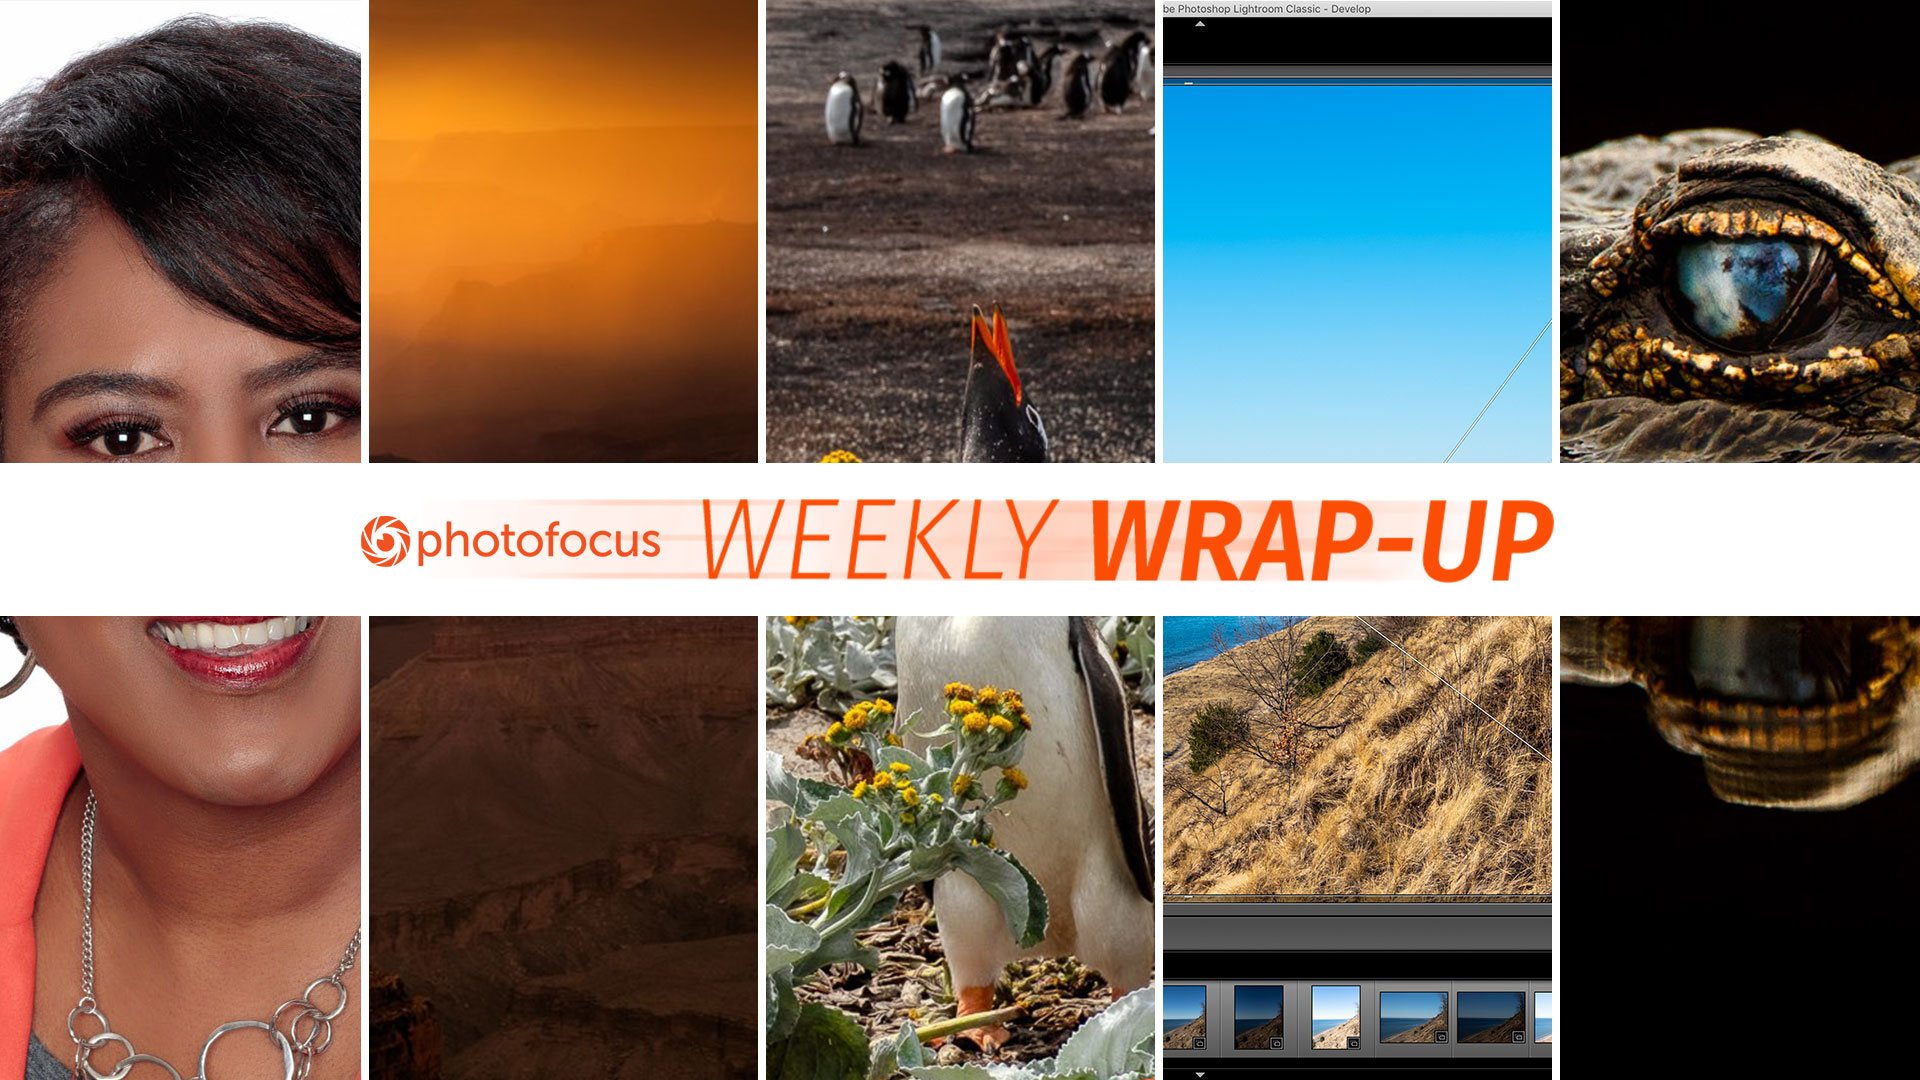 wrapup-020919